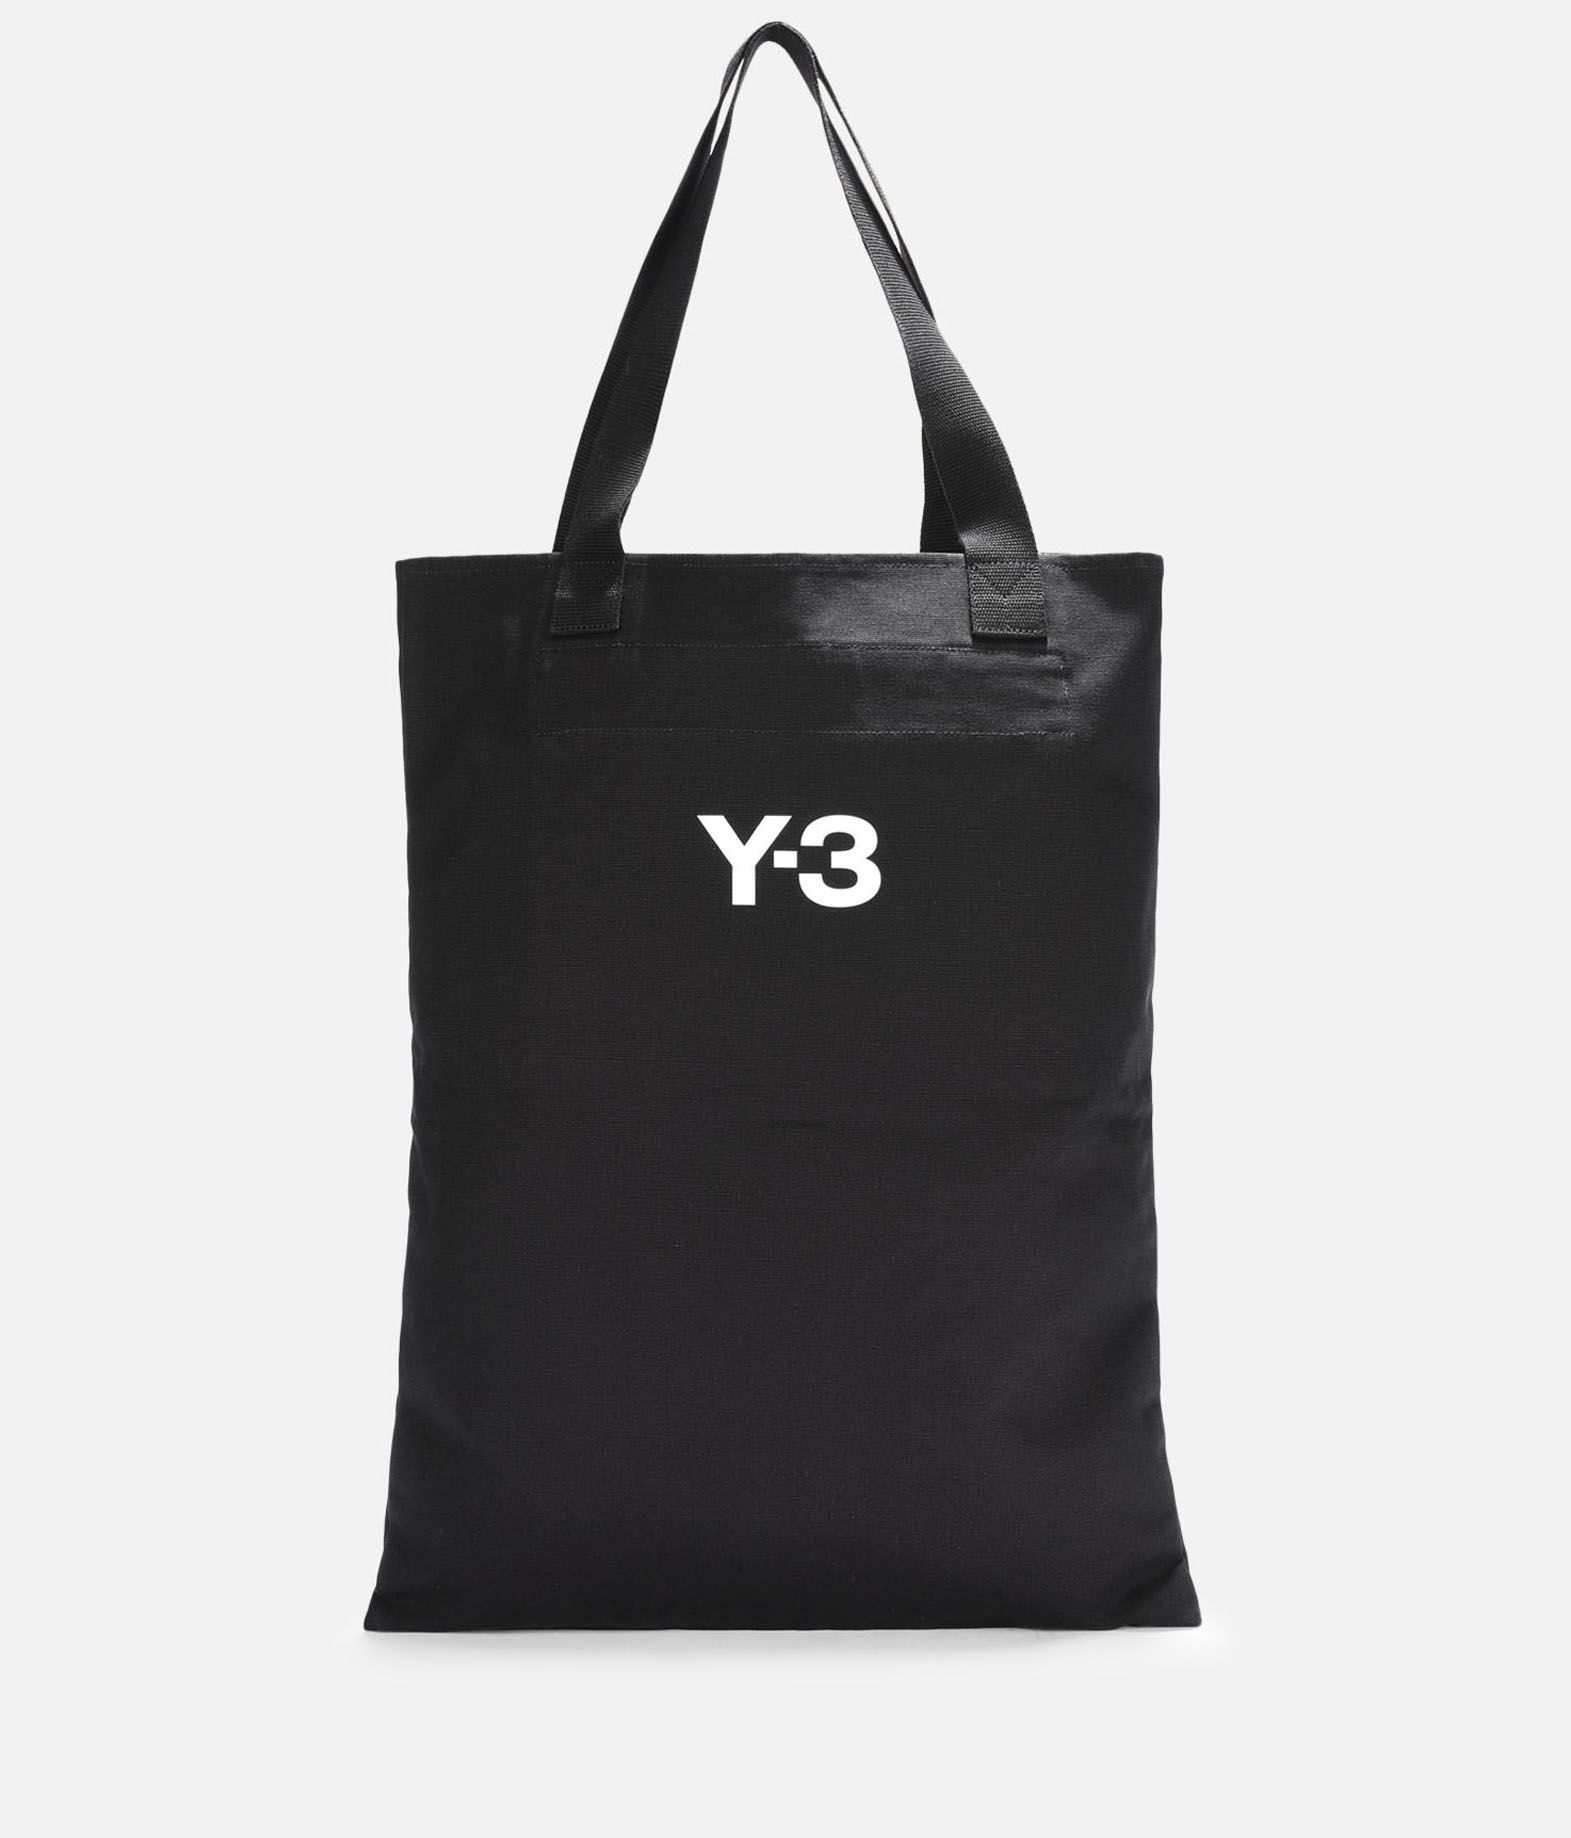 Y-3 Y-3 Slogan Tote Bag Borsa media in tessuto E d